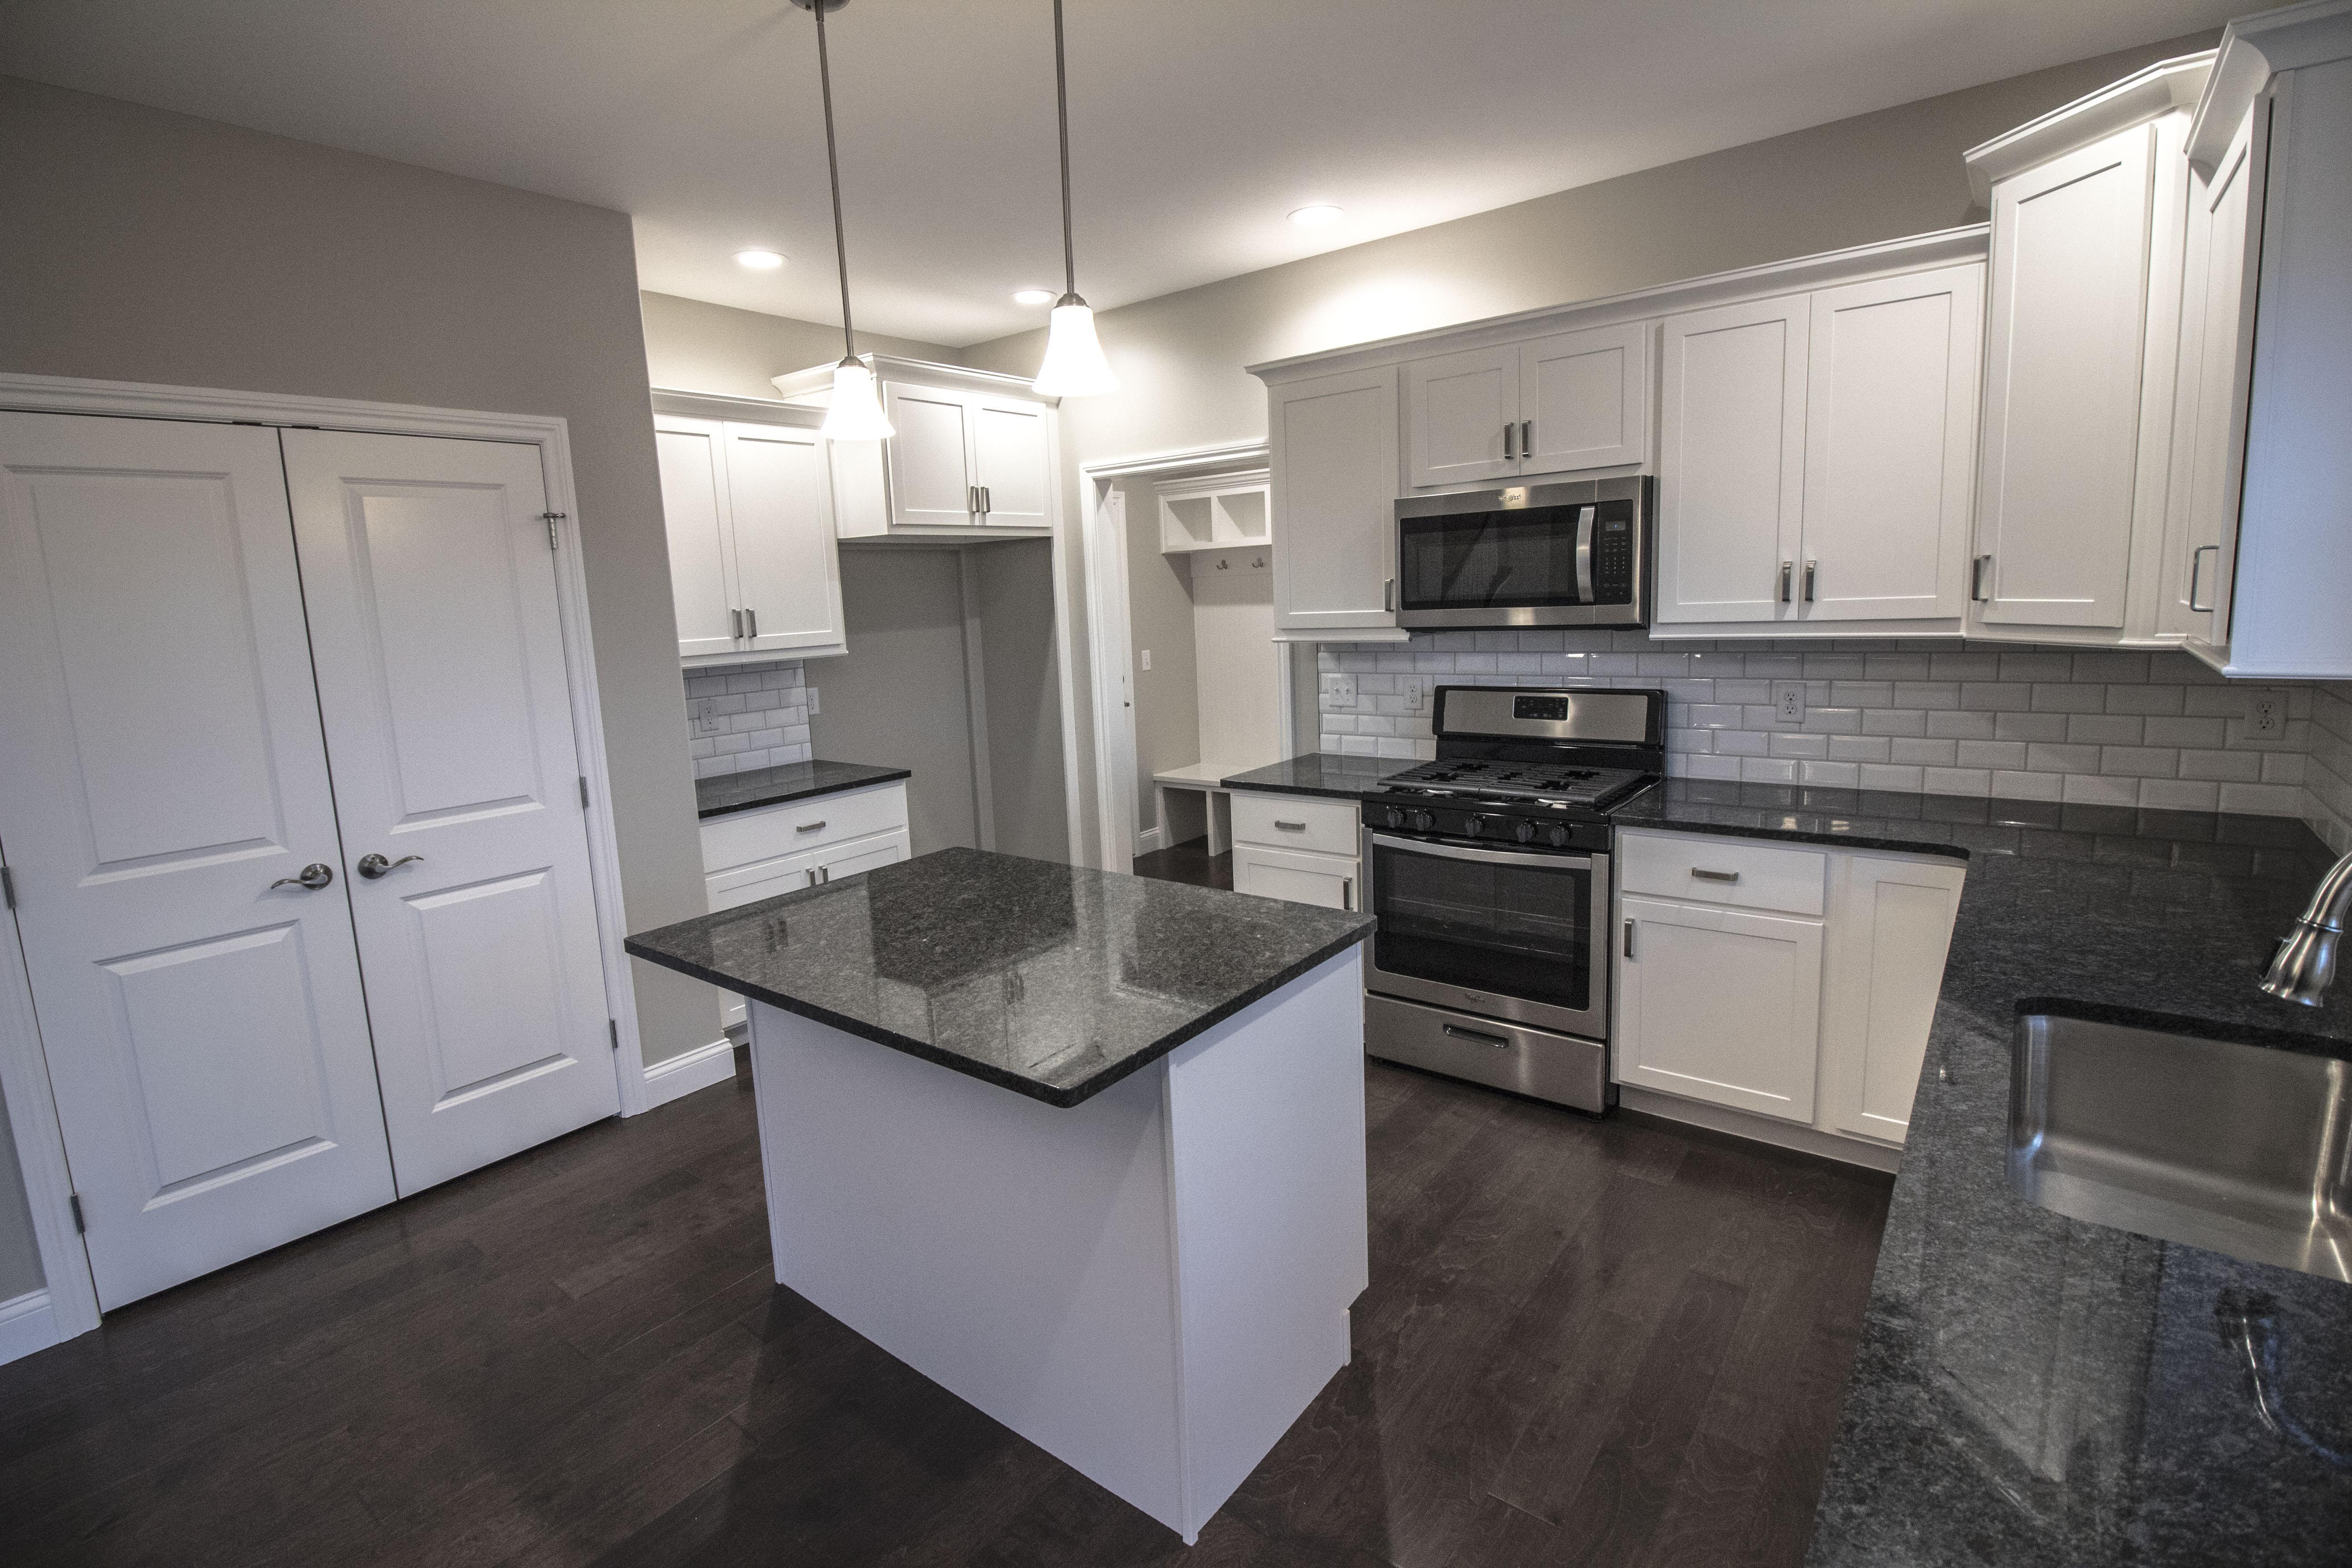 Kitchen featured in the Ridgeland 2 By Unlimited Homes in Champaign-Urbana, IL